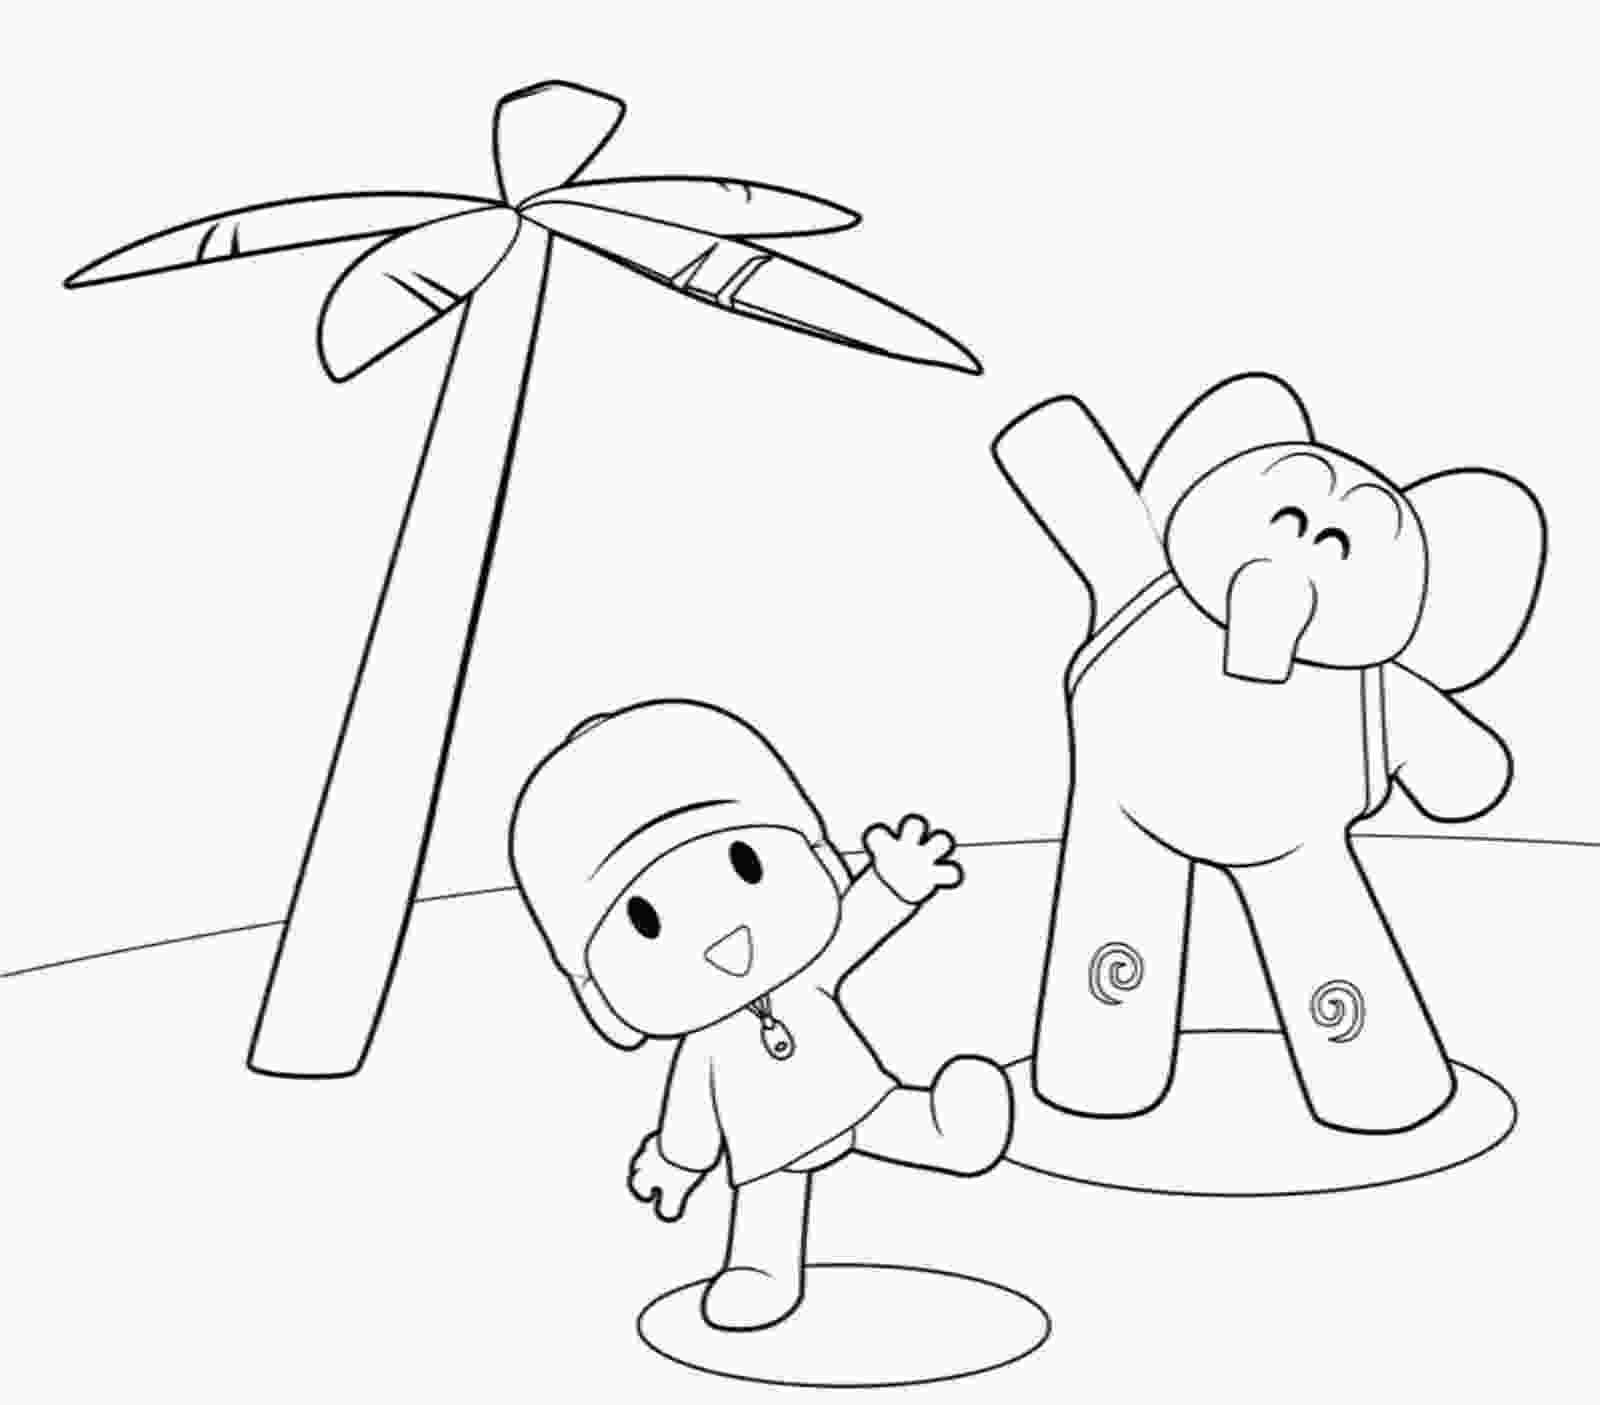 super pocoyo coloring pages pocoyo coloring pages free printable coloring pages